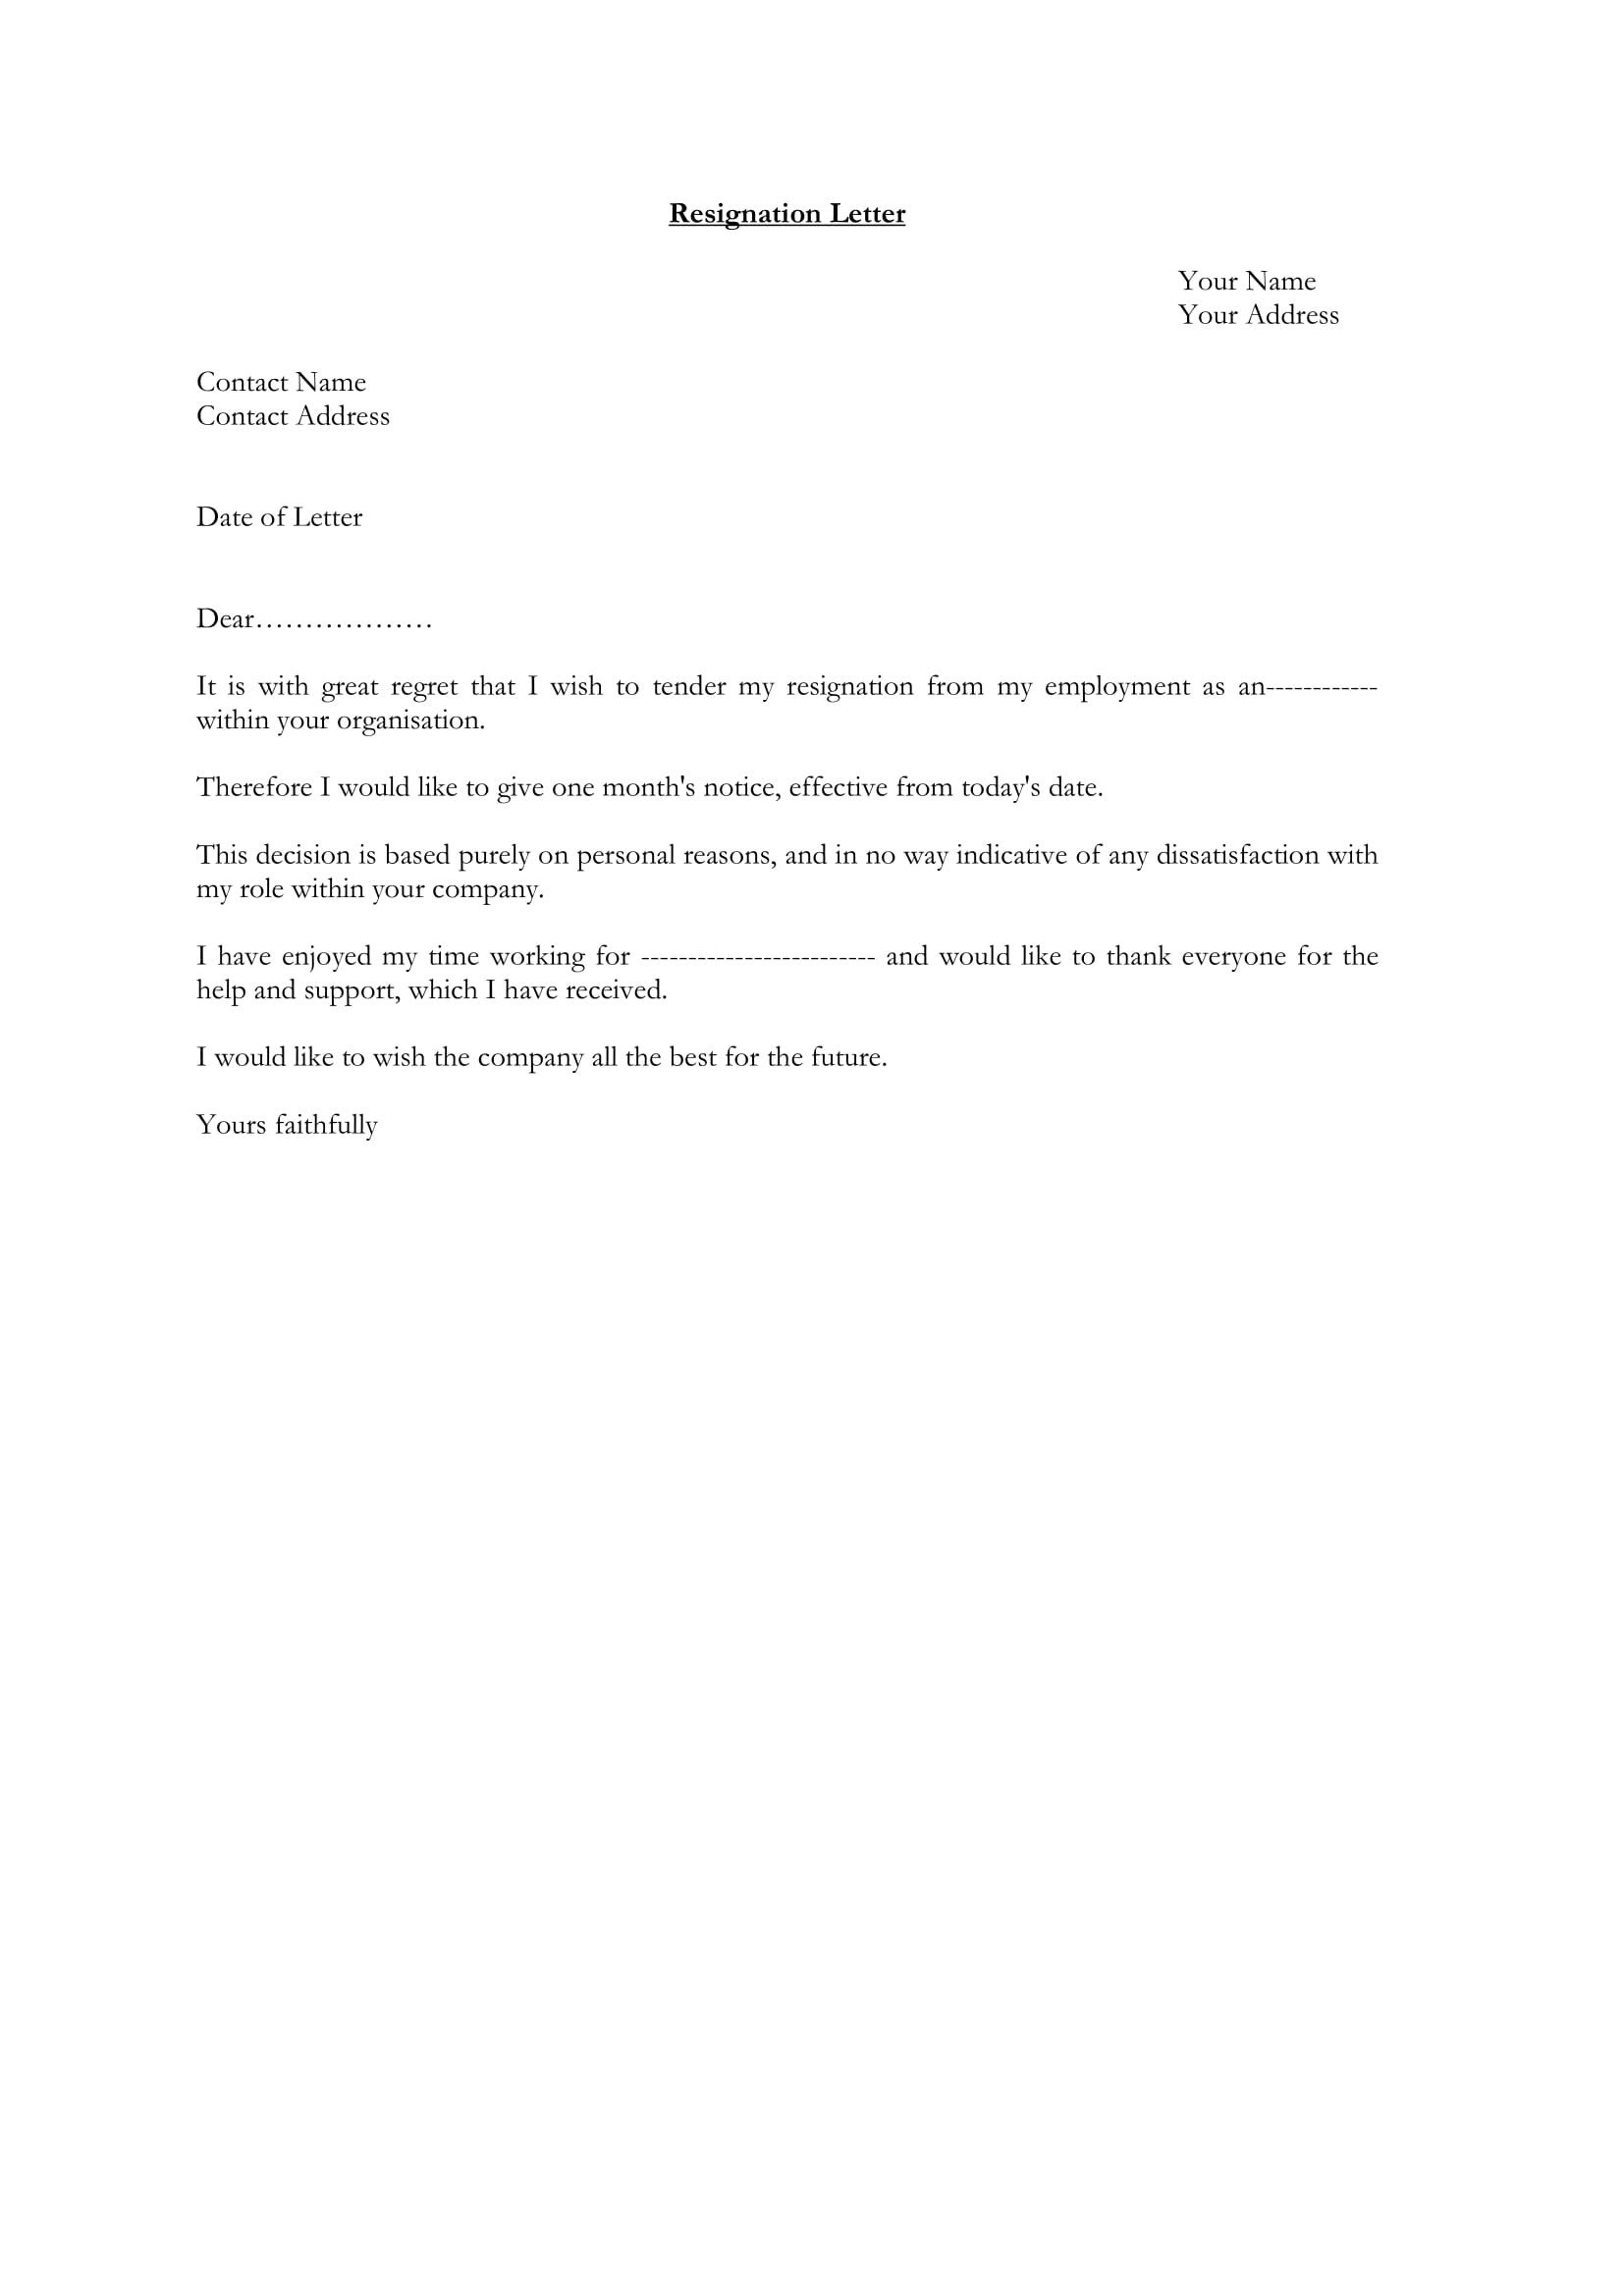 Retirement Resignation Letters Samples 35 Simple Resignation Letter Examples Pdf Word